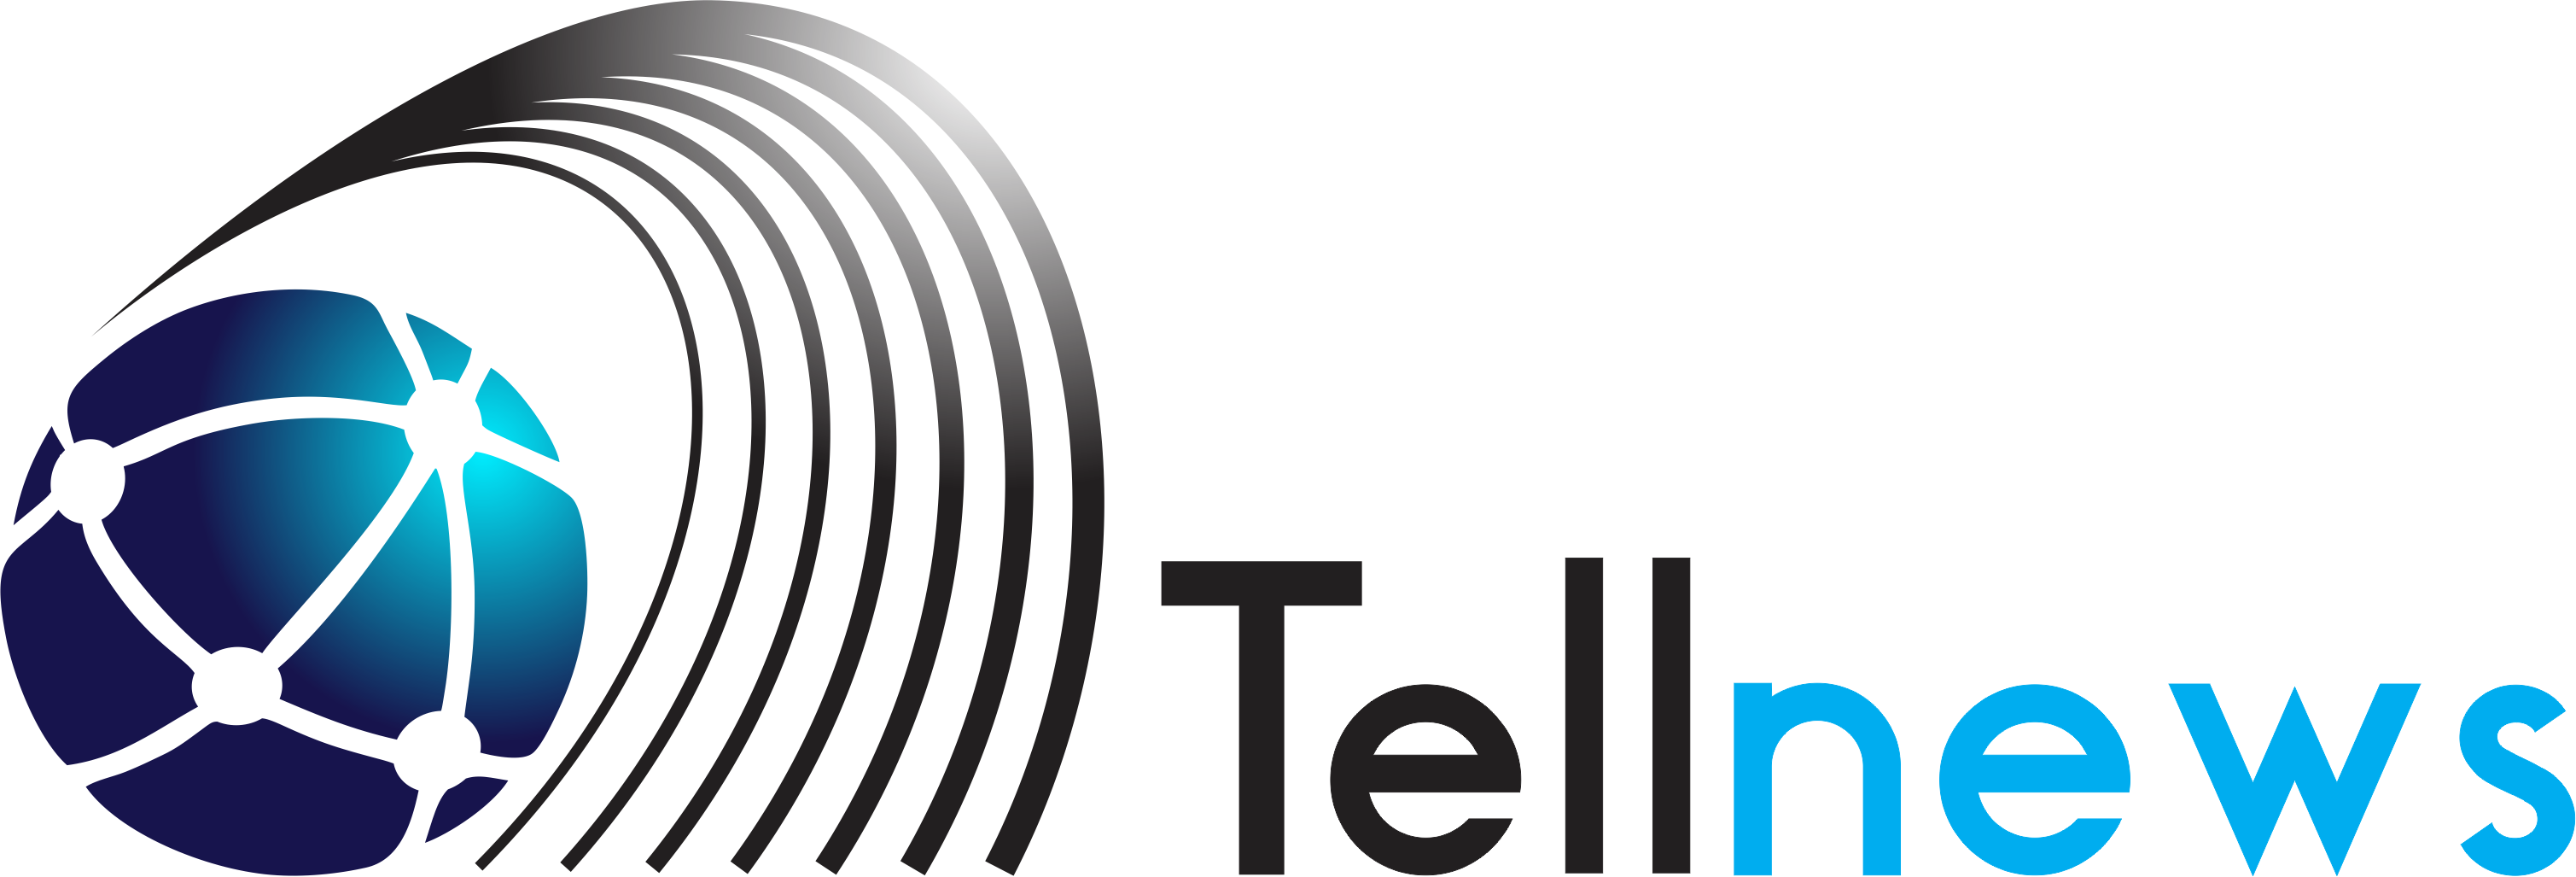 Tell News por TiWebDesign